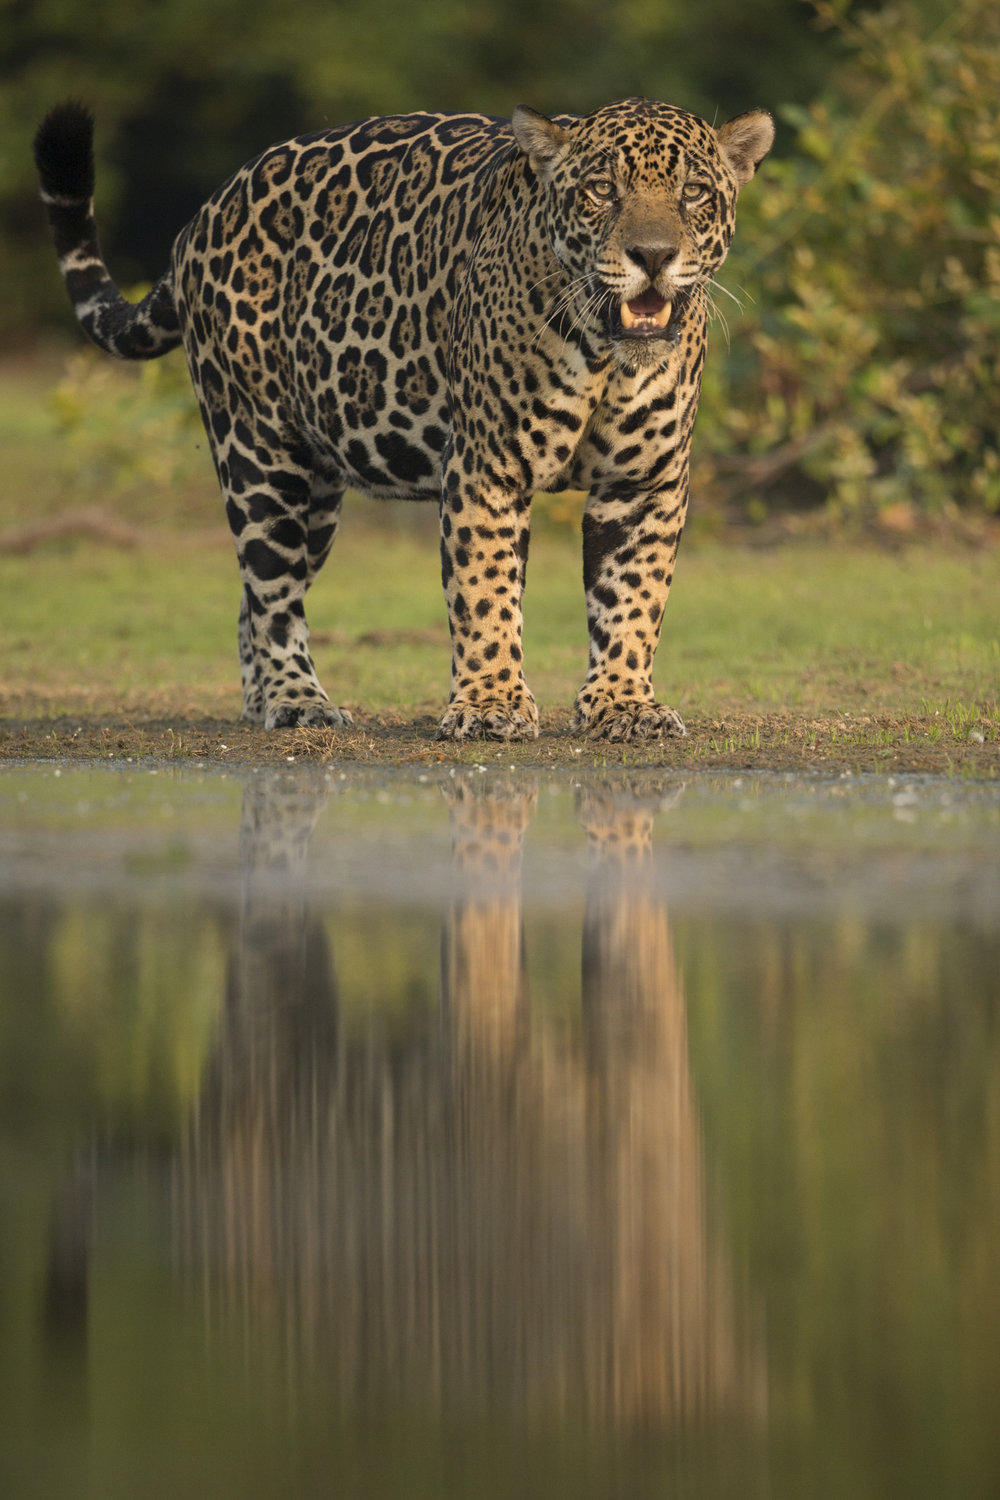 A jaguar in the Pantanal.